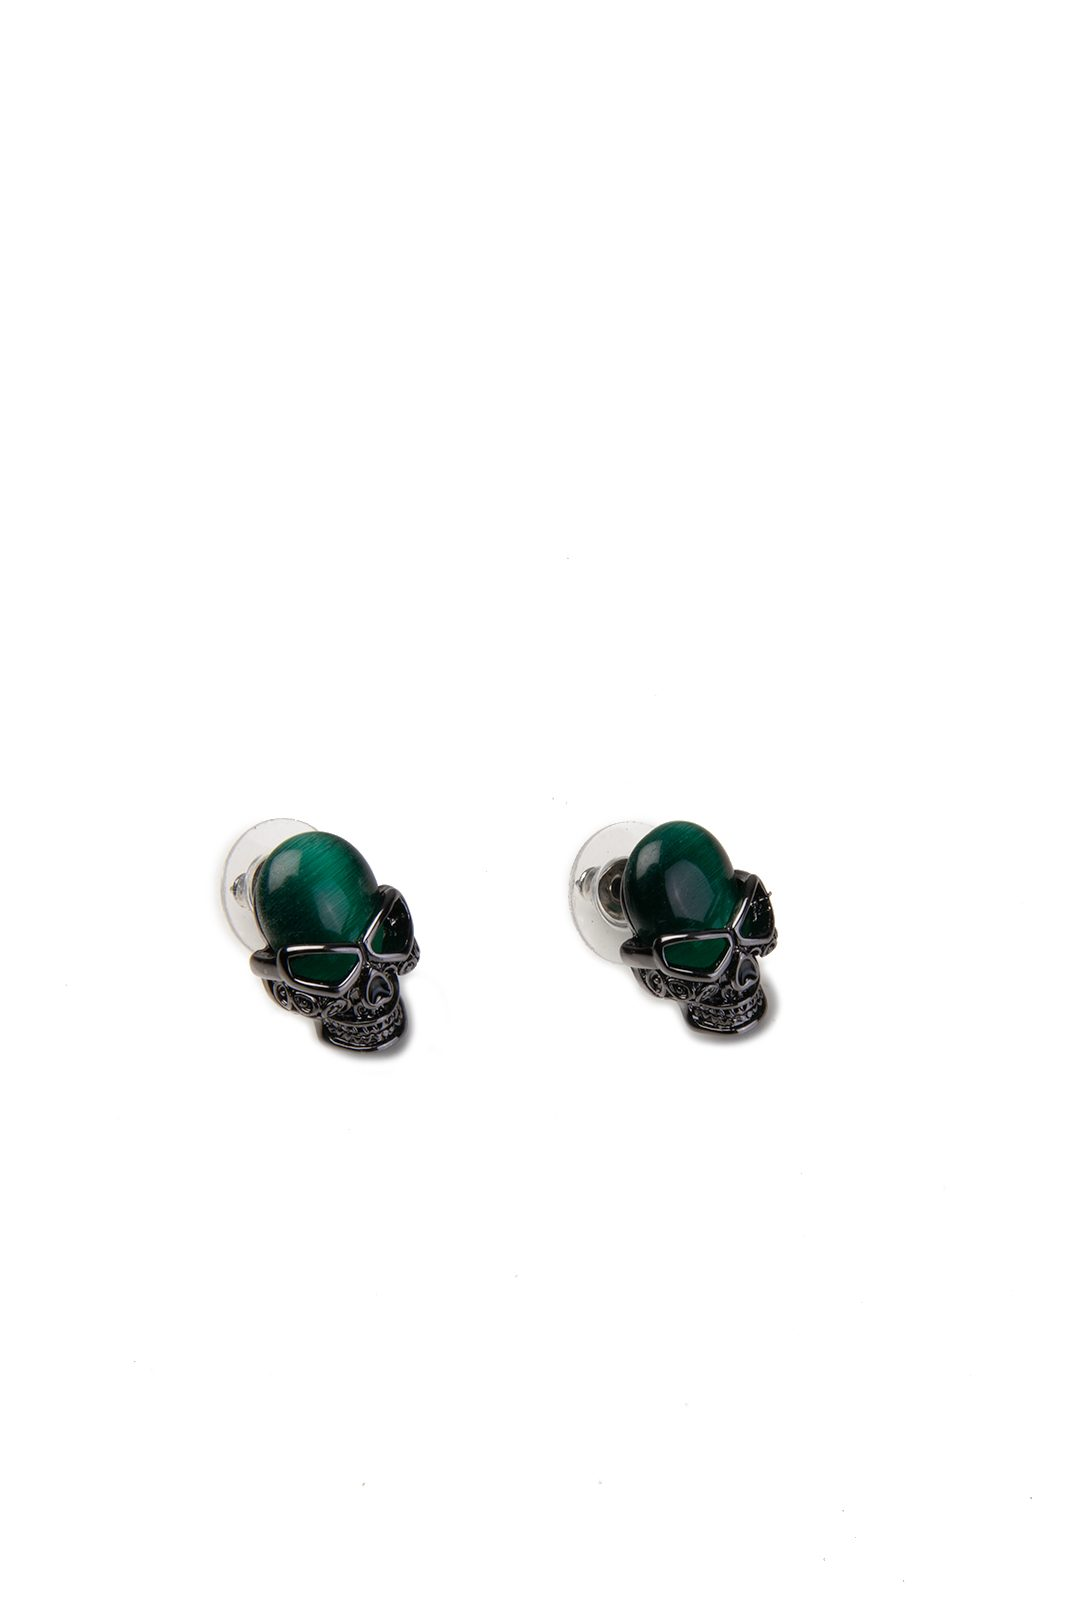 Emerald Skull Studded Earrings